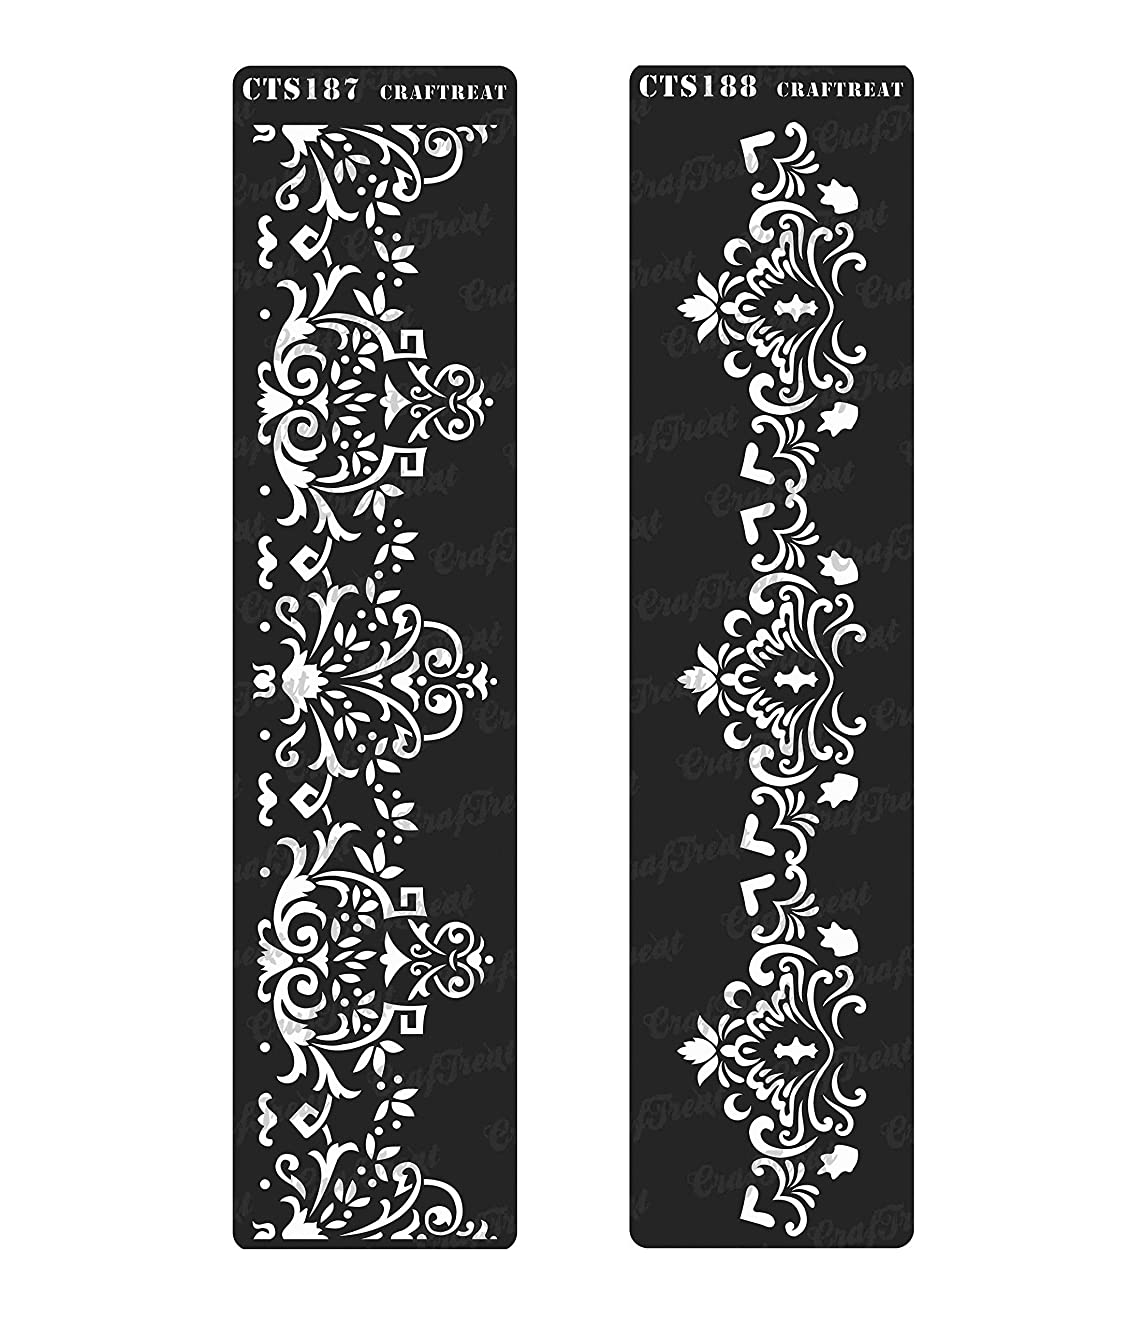 CrafTreat Stencil - Border 1 & 2 (2 pcs)   Reusable Painting Template for Home Decor, Crafting, DIY Albums and Printing on Paper, Floor, Wall, Tile, Fabric, Wood 3